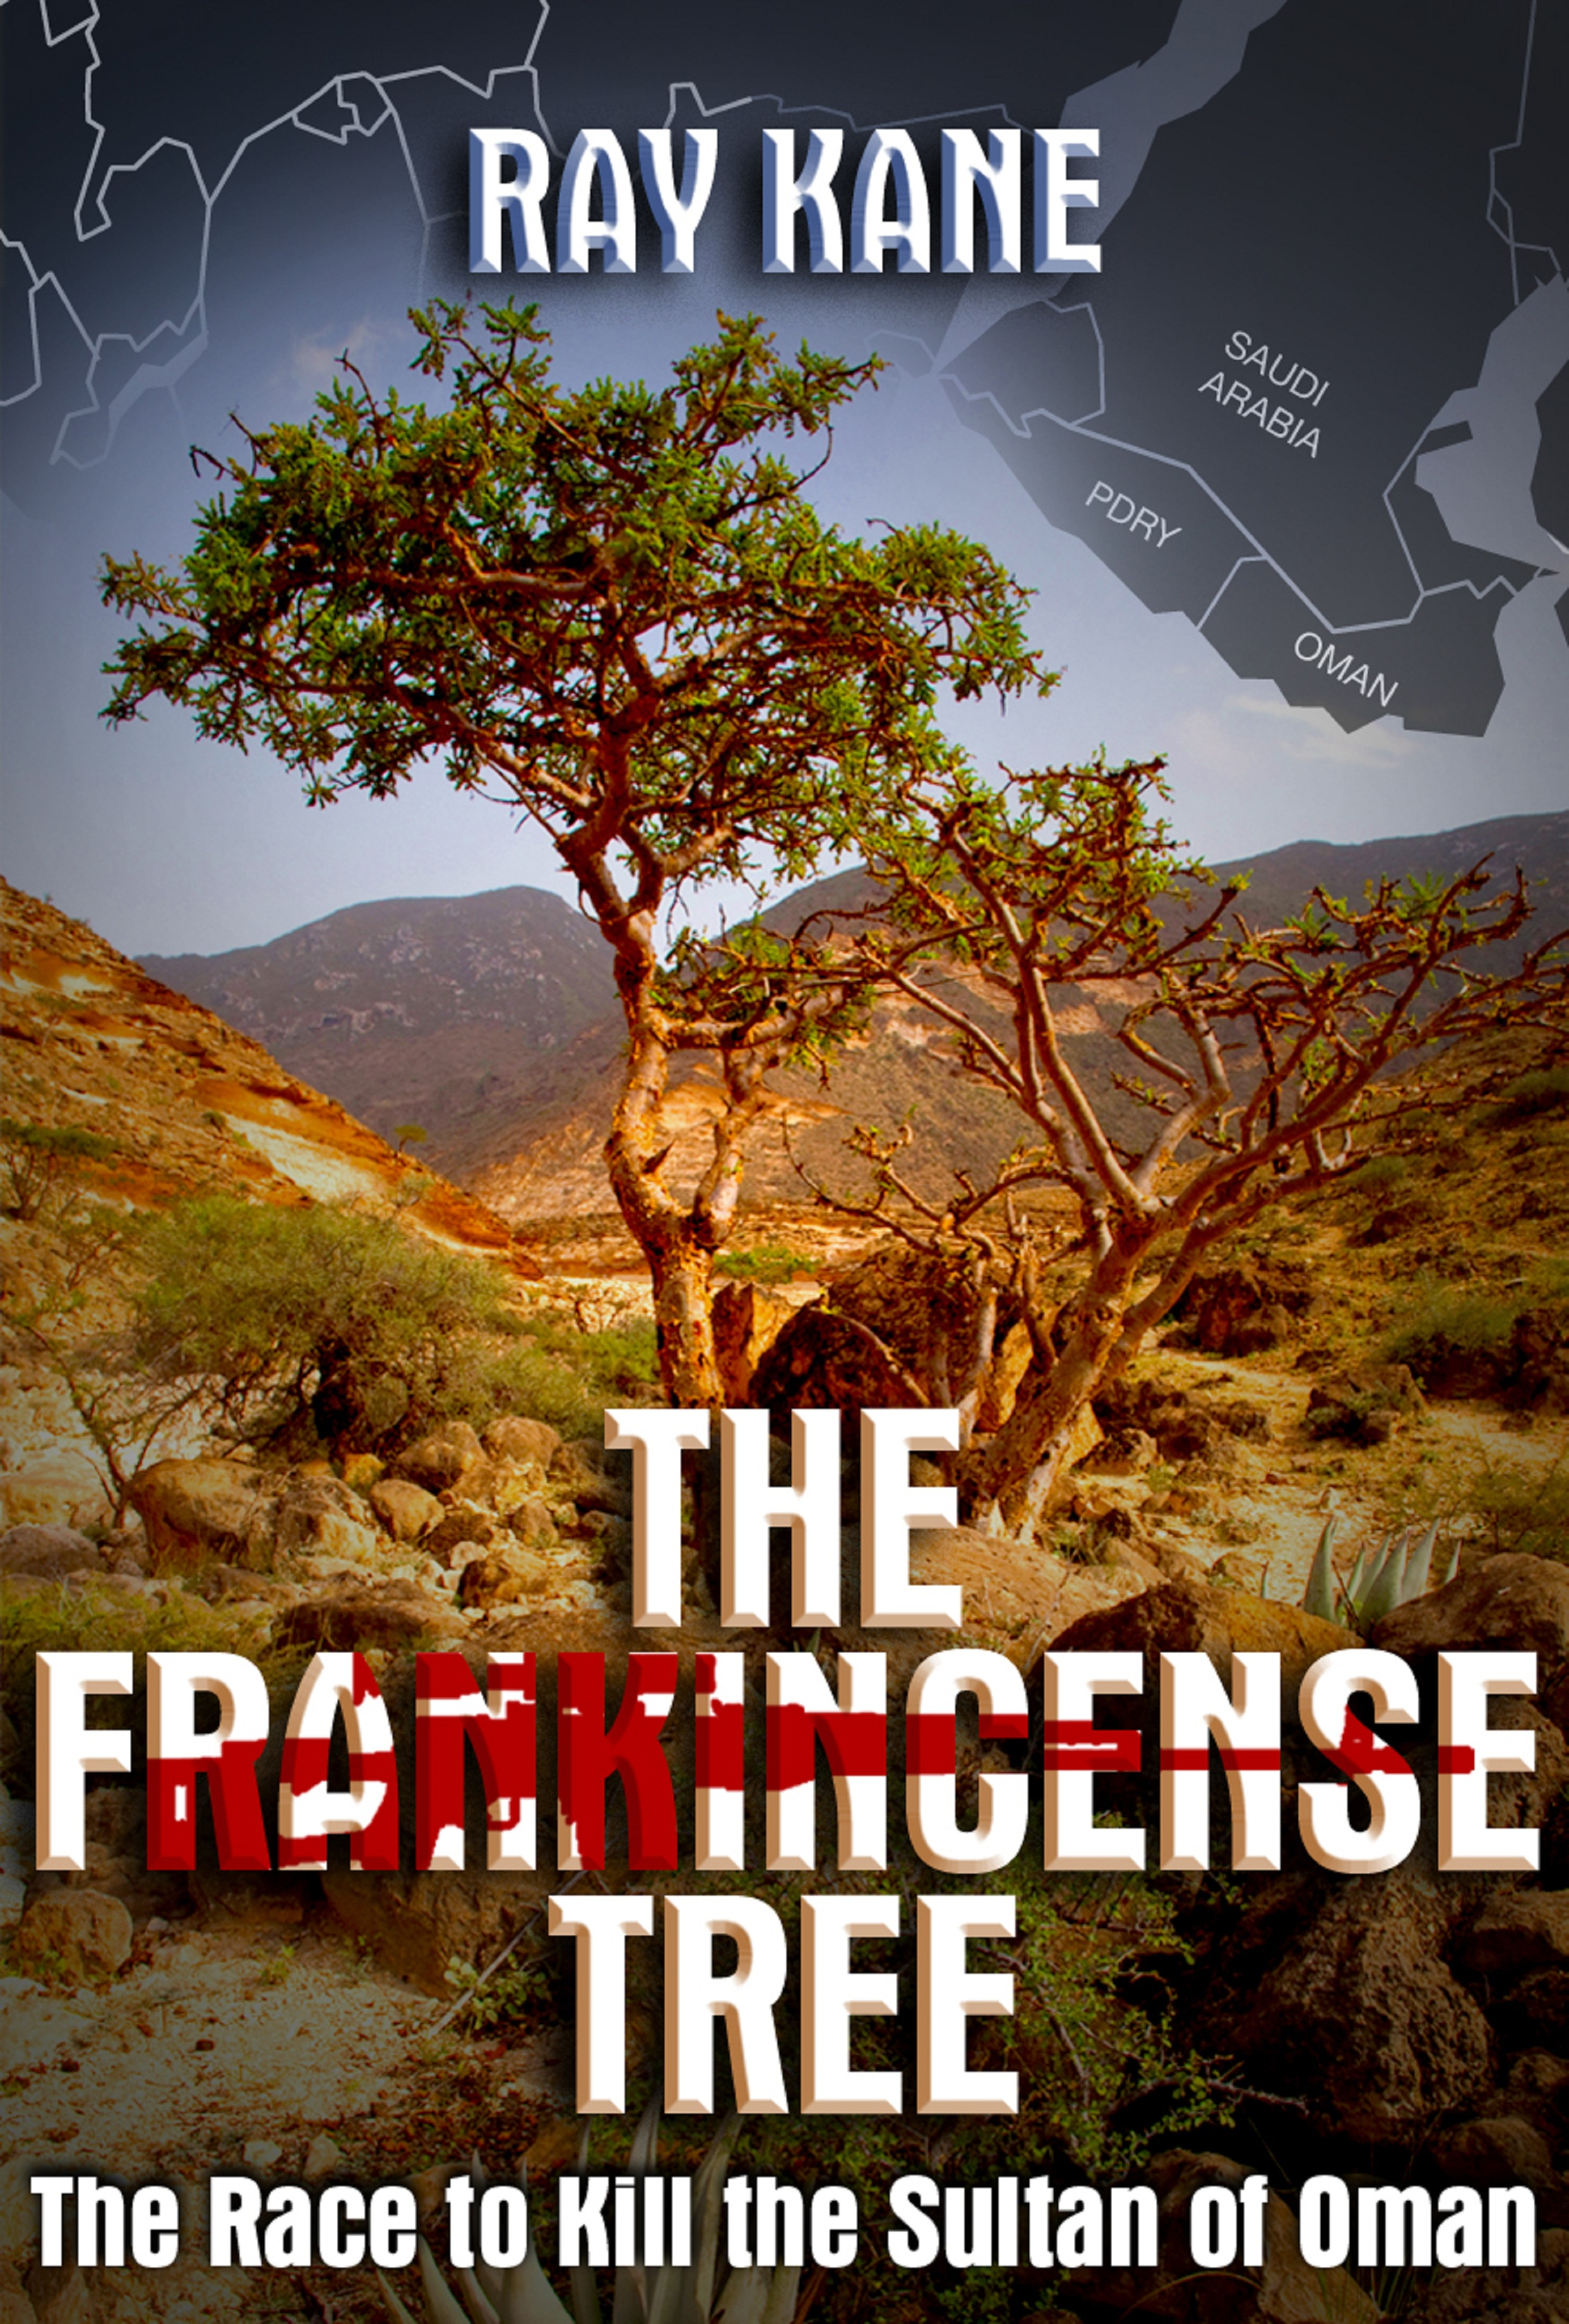 THE FRANKINCENSE TREE